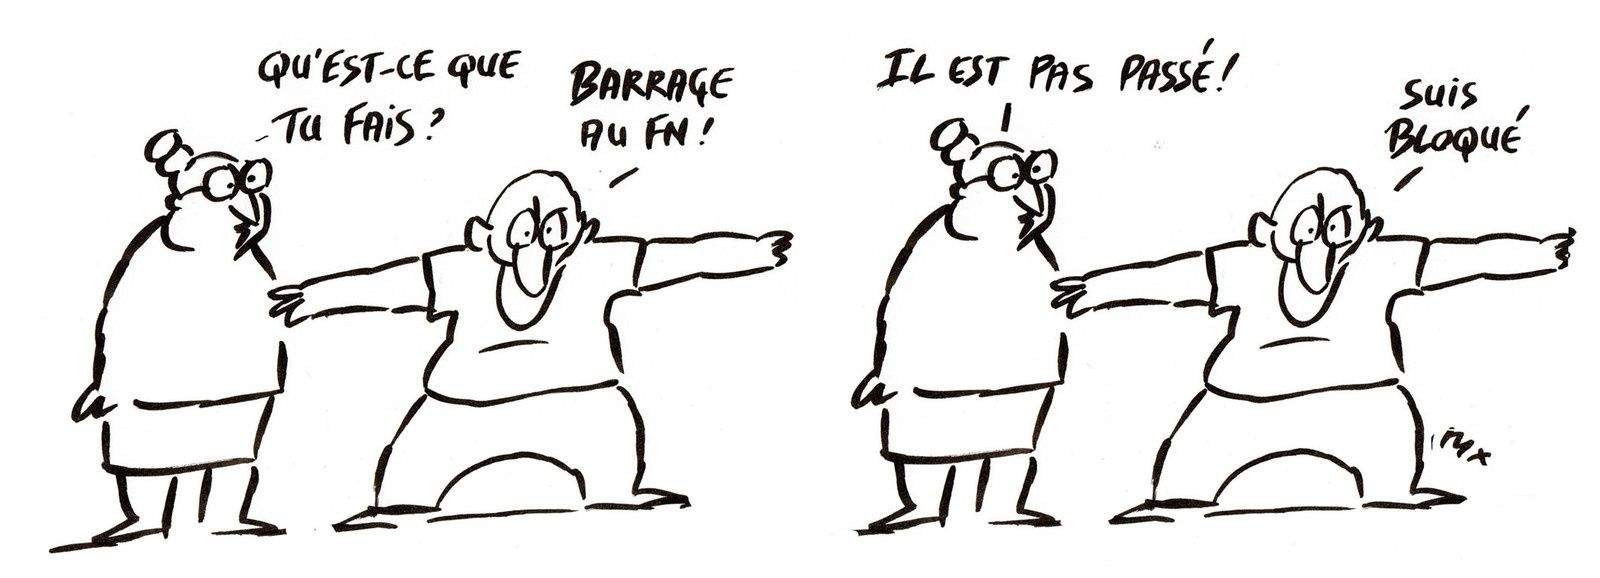 Barrage anti FN...